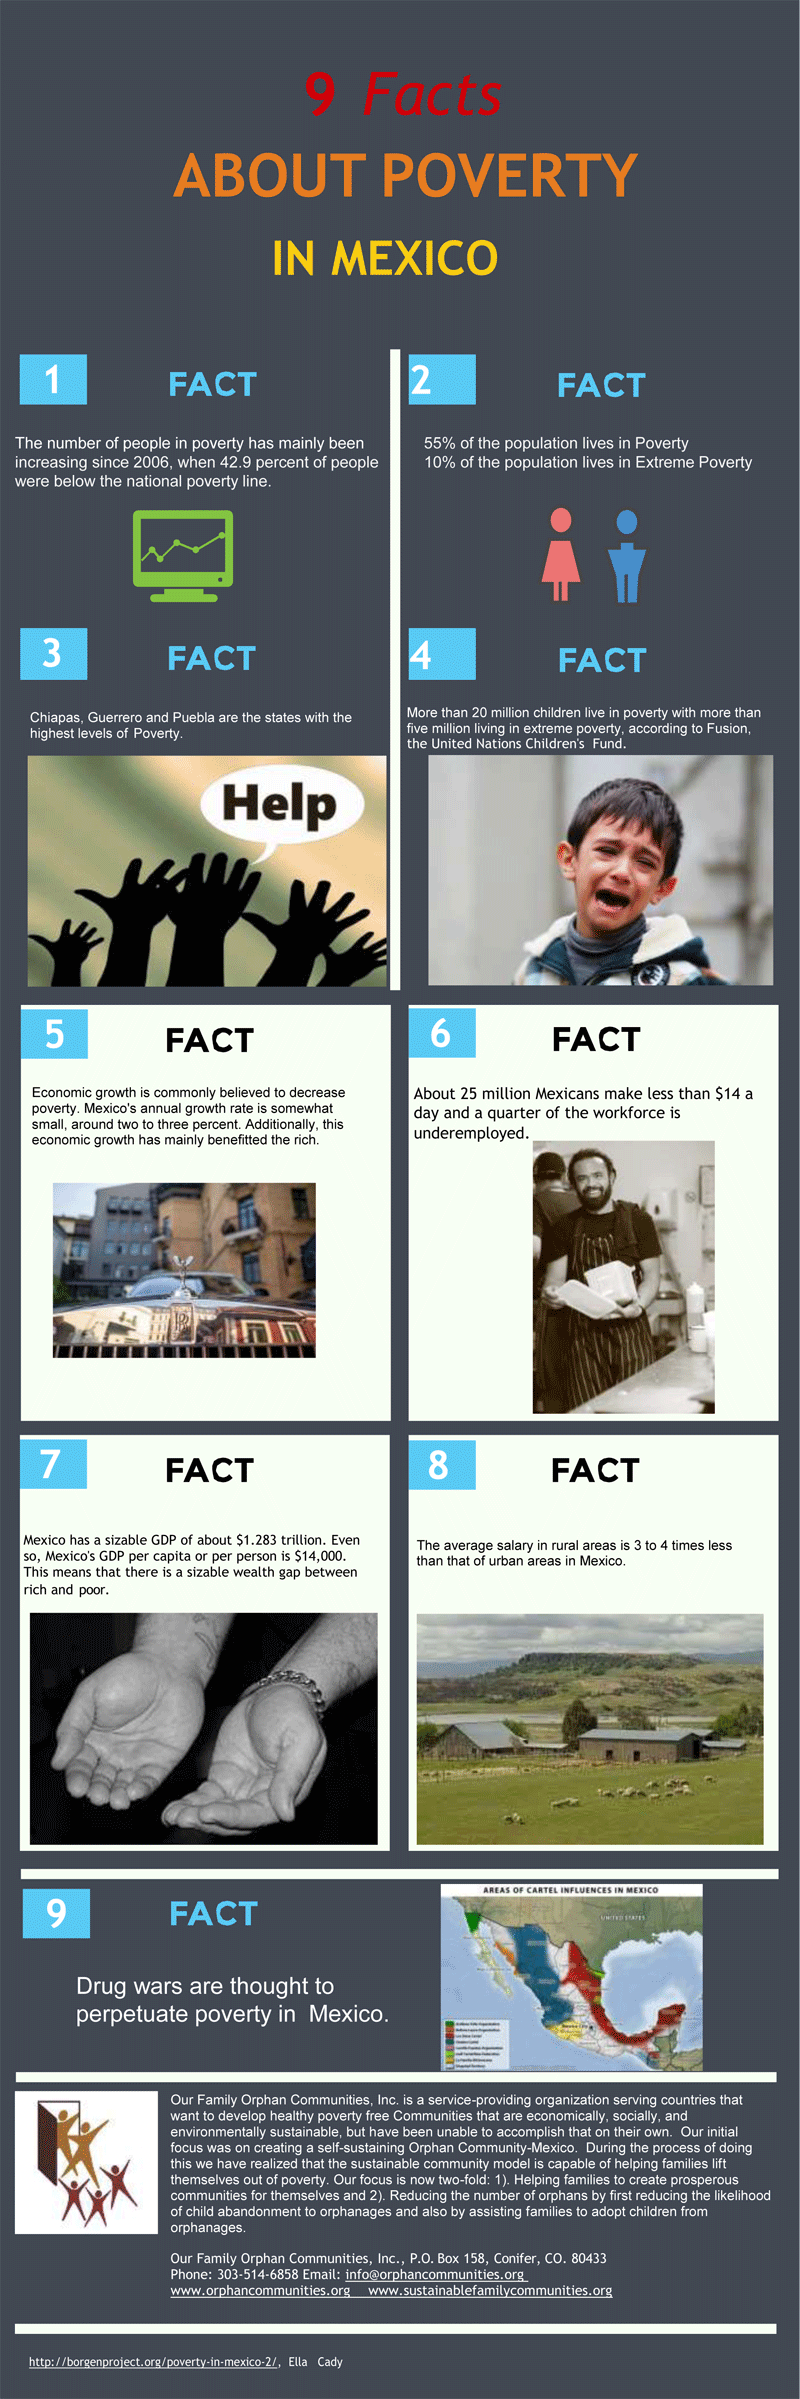 9-facts-about-poverty-in-Mexico